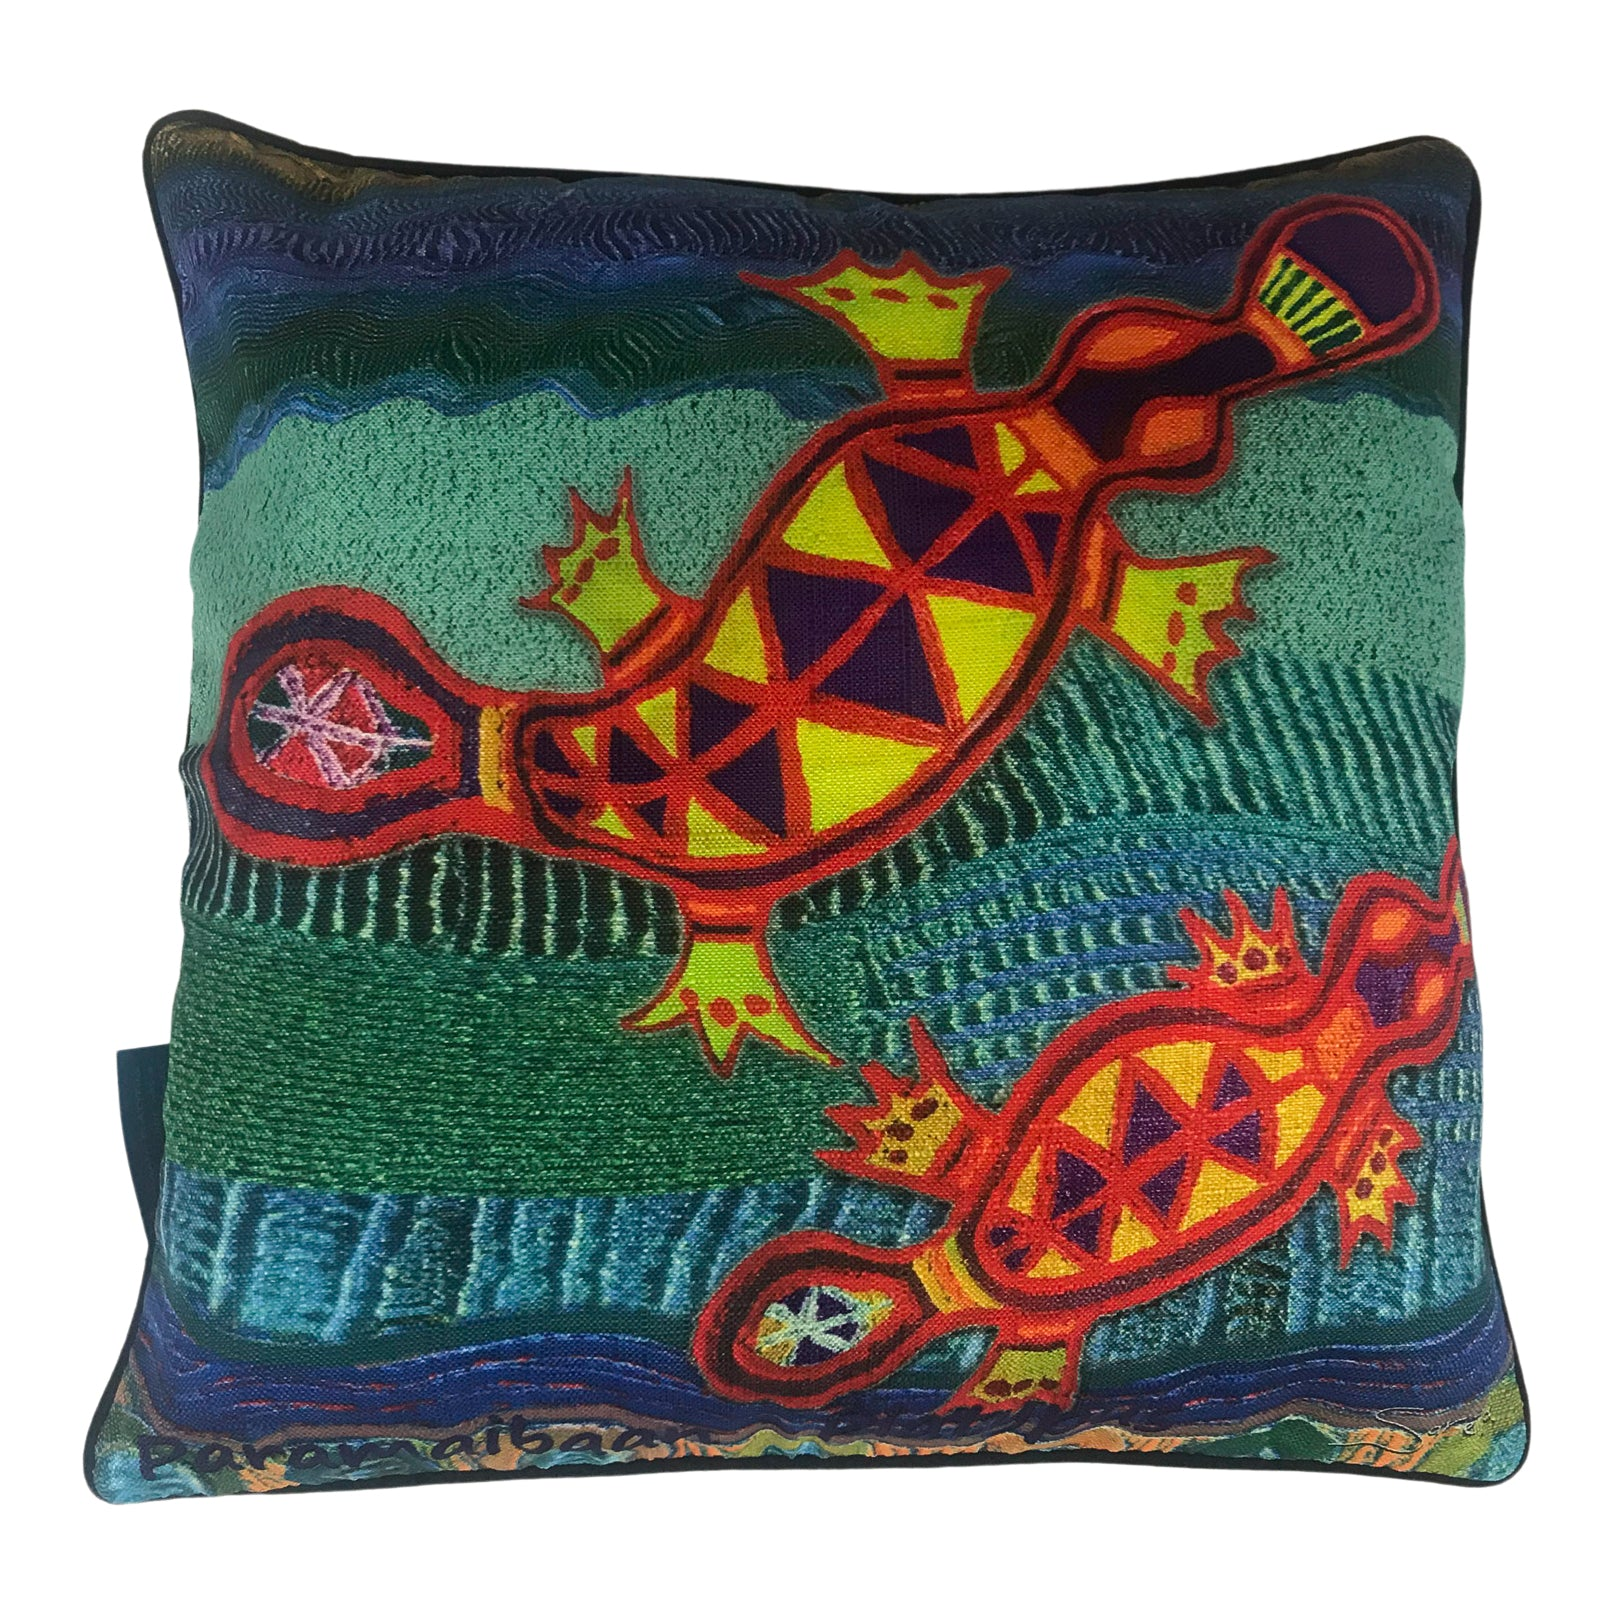 Cushion cover - platypus - Saretta Art and Design